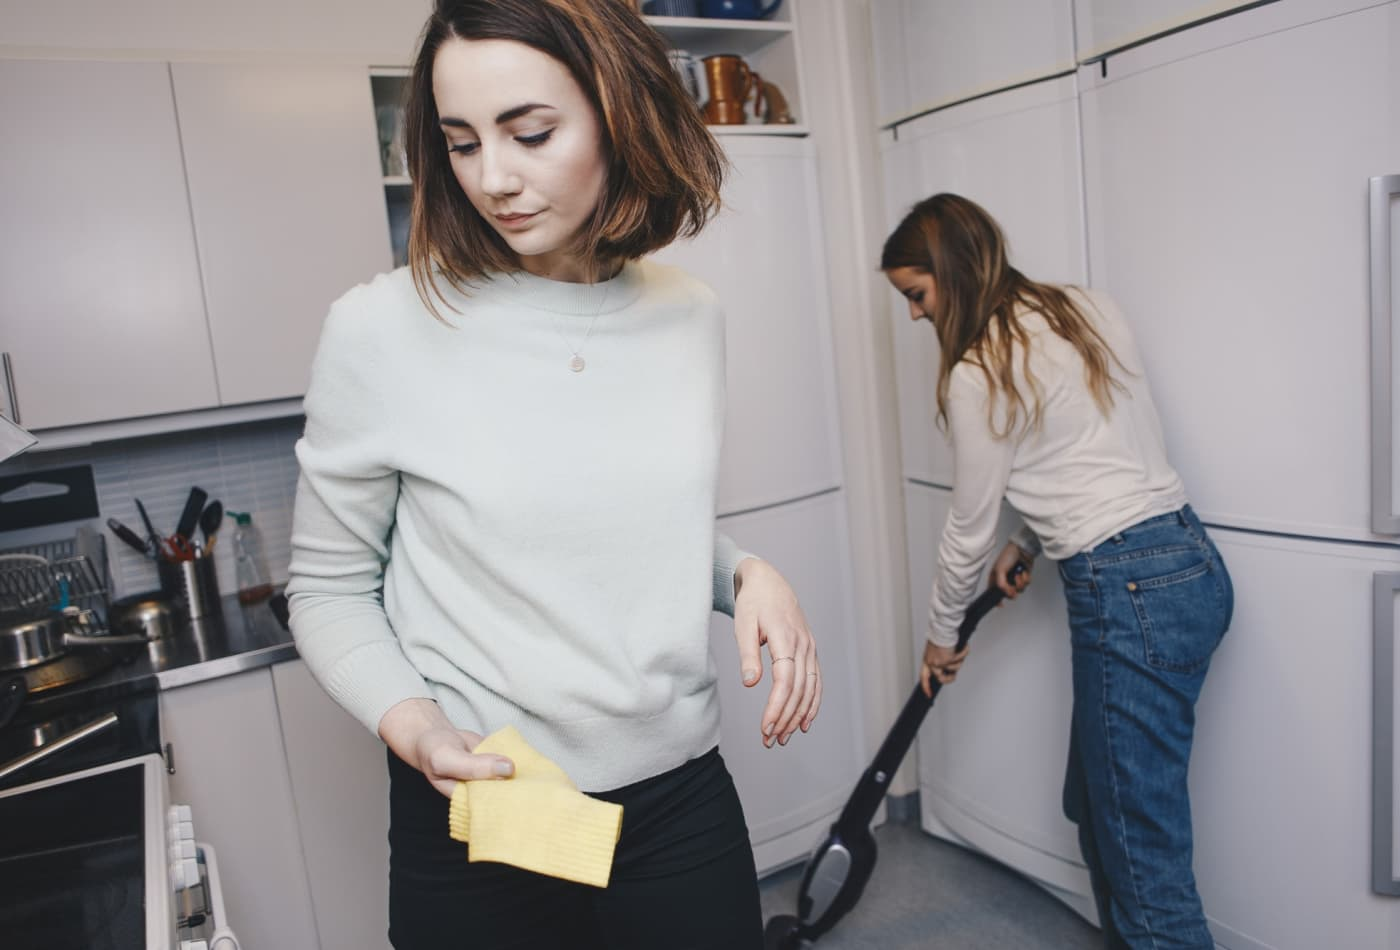 5 ways to deal with a bad roommate